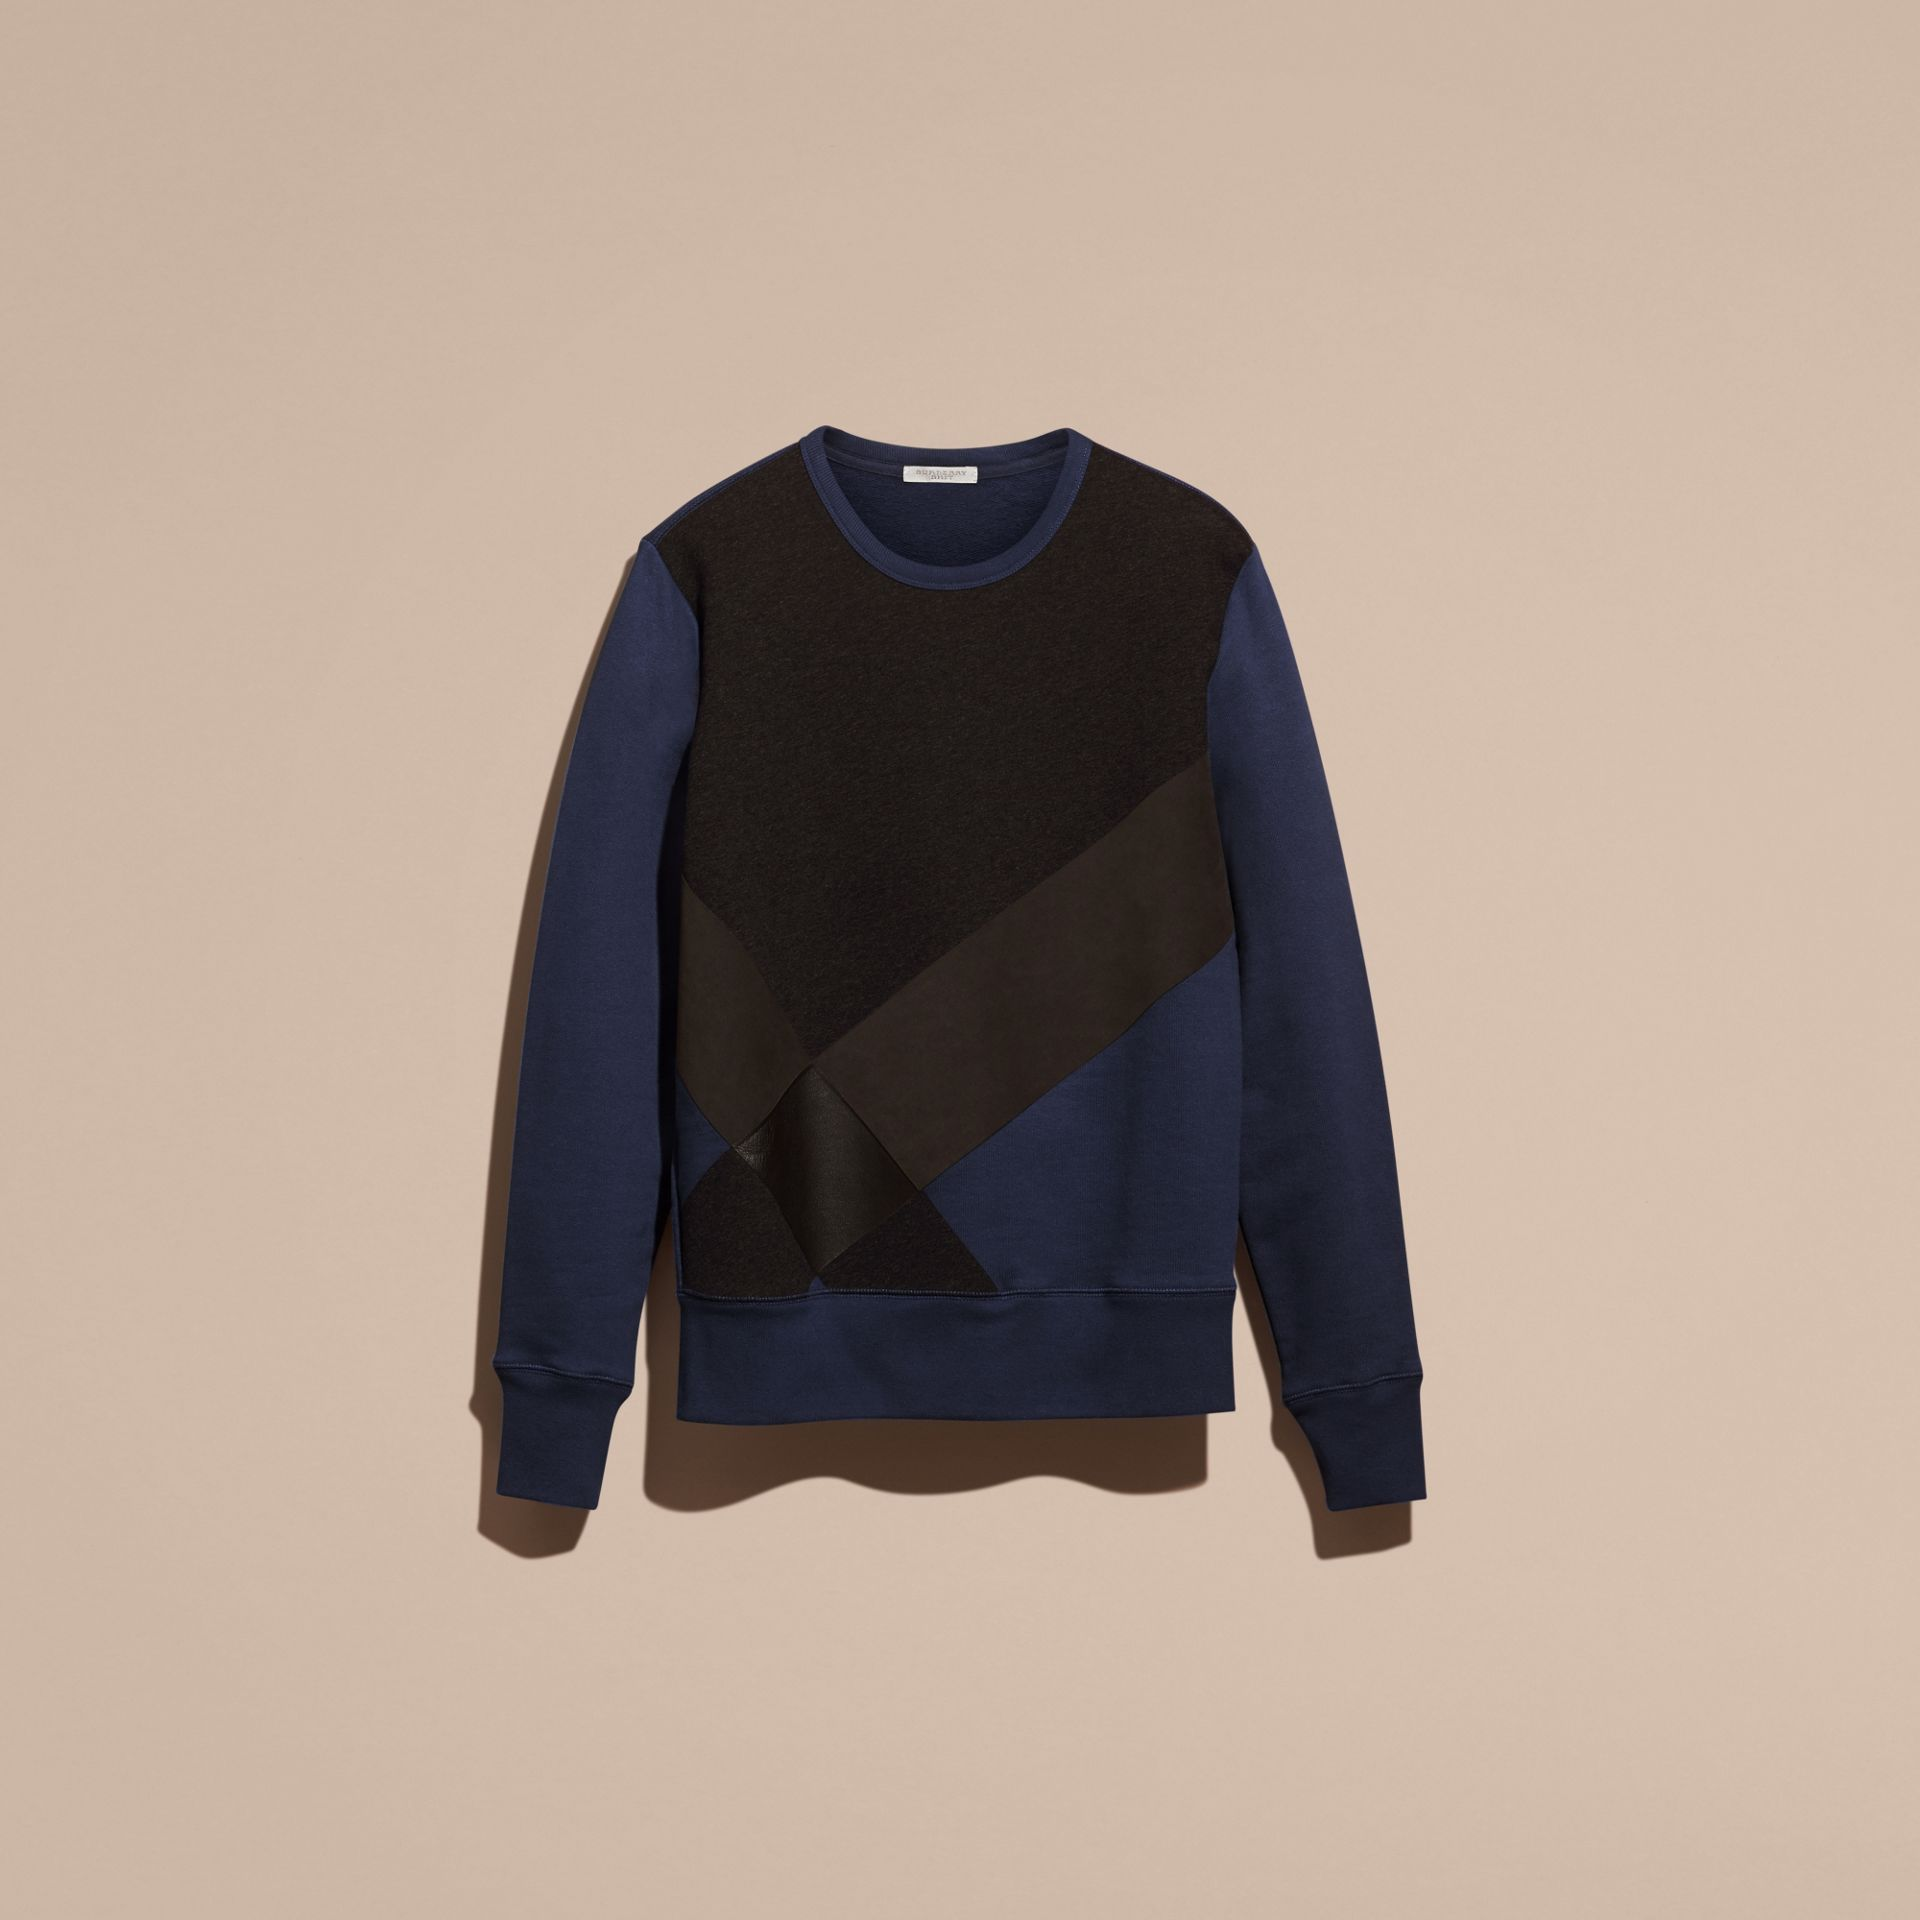 Indigo Colour Block Cotton and Lambskin Sweatshirt - gallery image 4